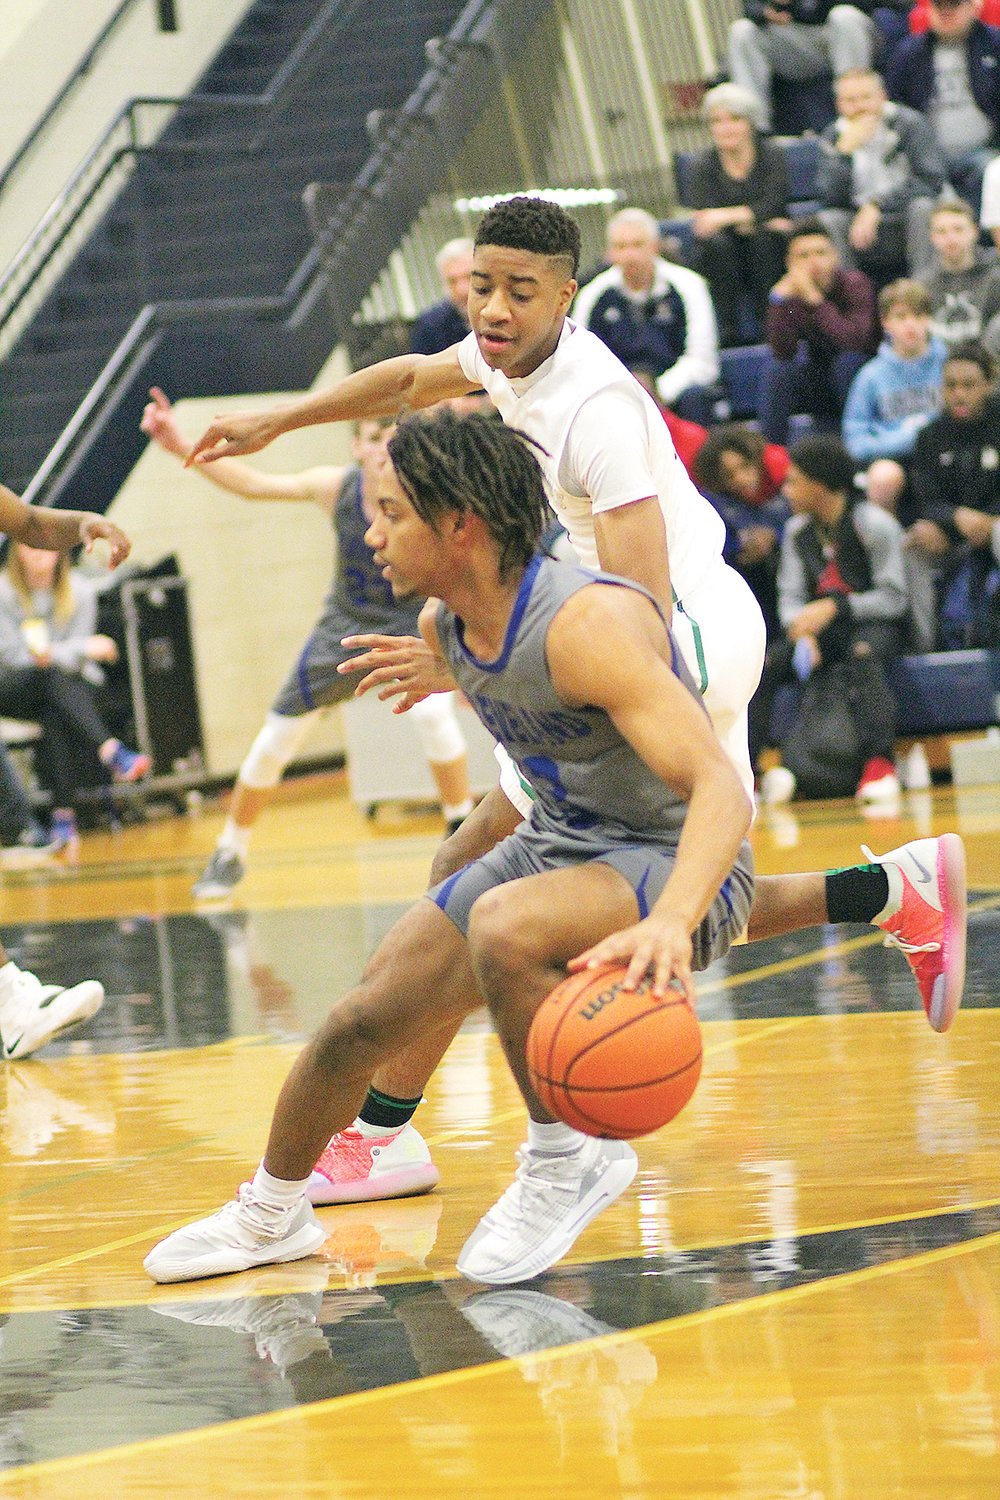 CLEVELAND'S Isaiah Johnson pulls up in the lane in front of an East Hamilton defender in the first half of the District 5-AAA championship game Tuesday, at Soddy-Daisy High School.